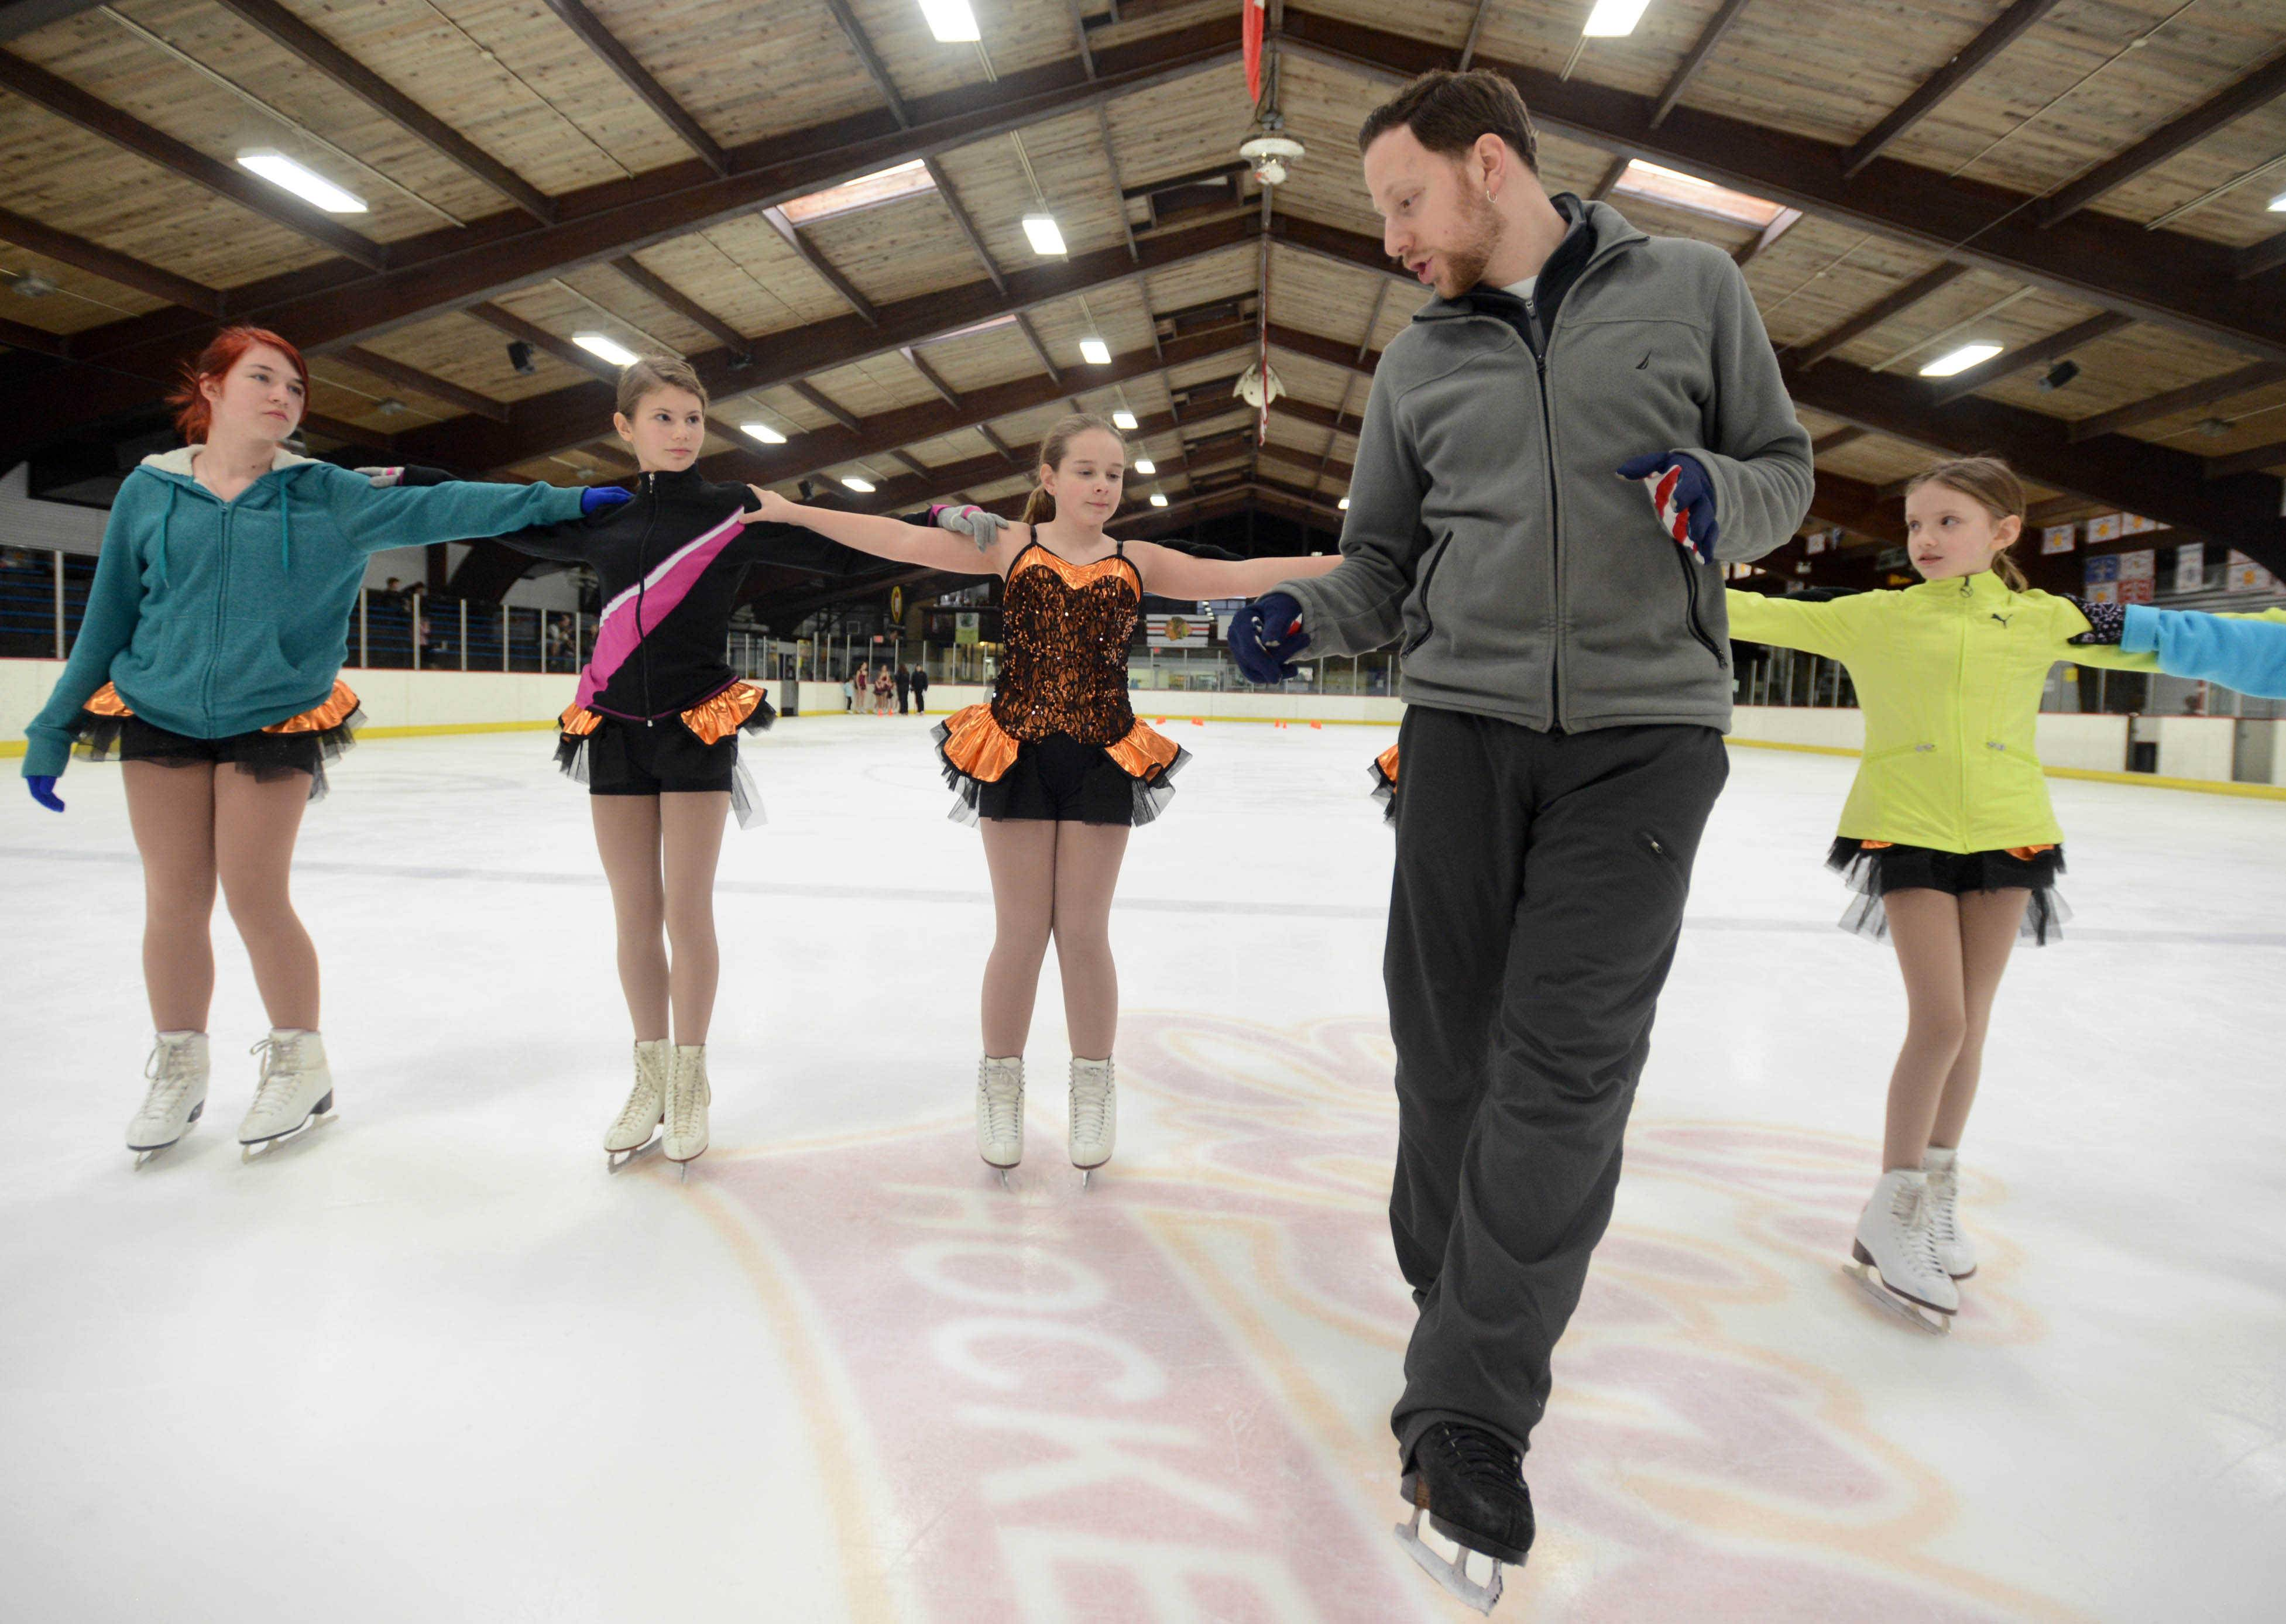 Coach Josh Fischel works with Gamma-level students during rehearsal at the Oakton Ice Arena for the upcoming Park Ridge Park District Ice Show.